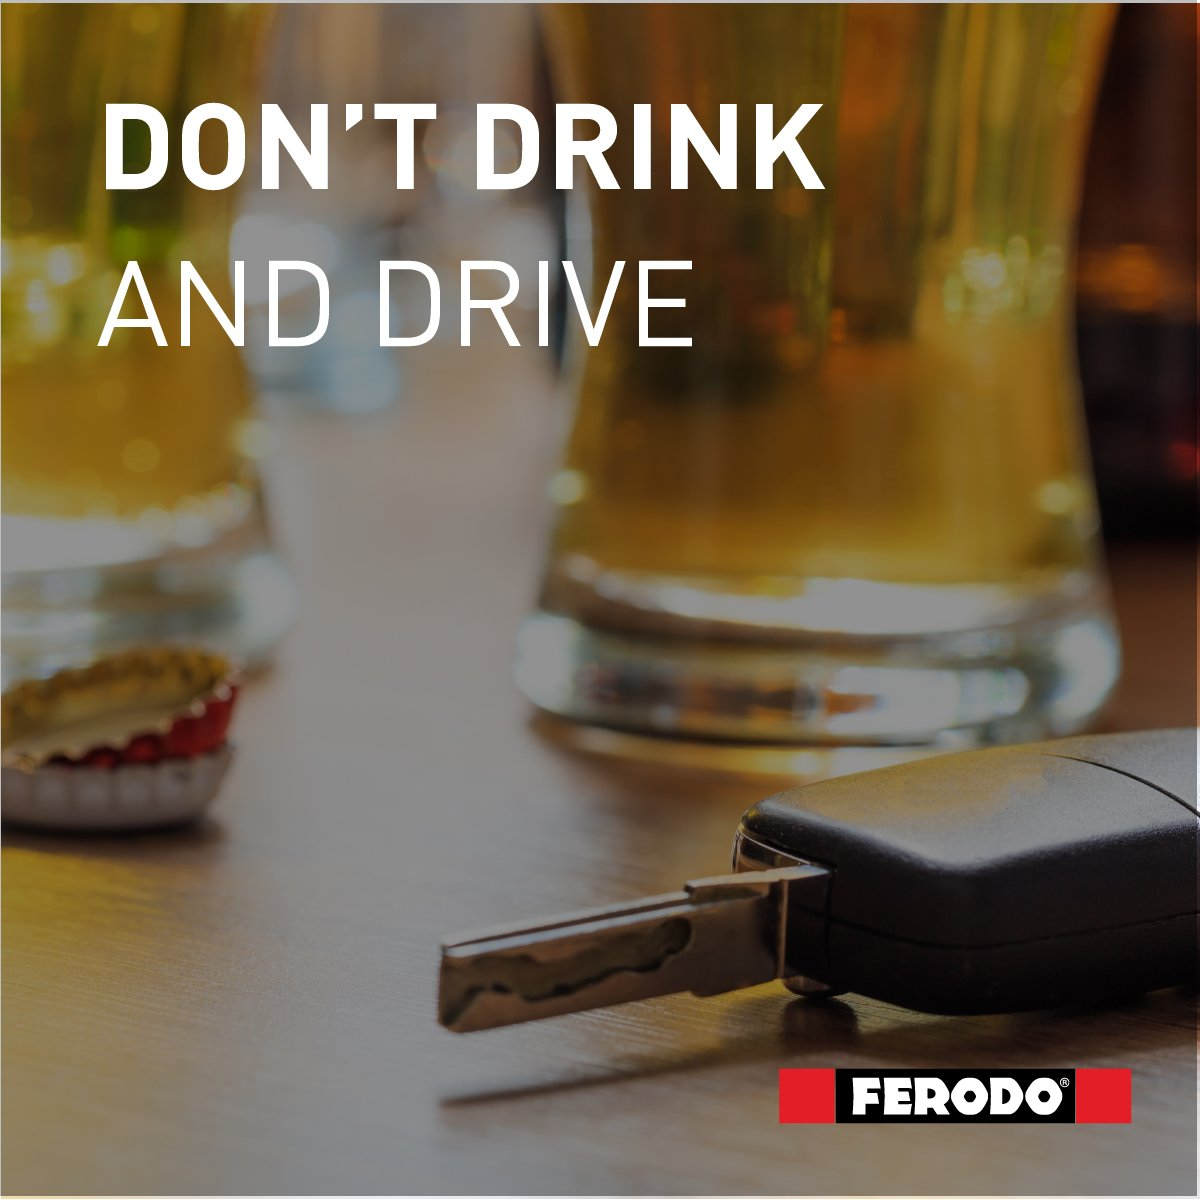 Nobody wants to end the year behind bars, abide by all road rules and don't drink and drive this holiday period. https://t.co/MFeFQEt7YN